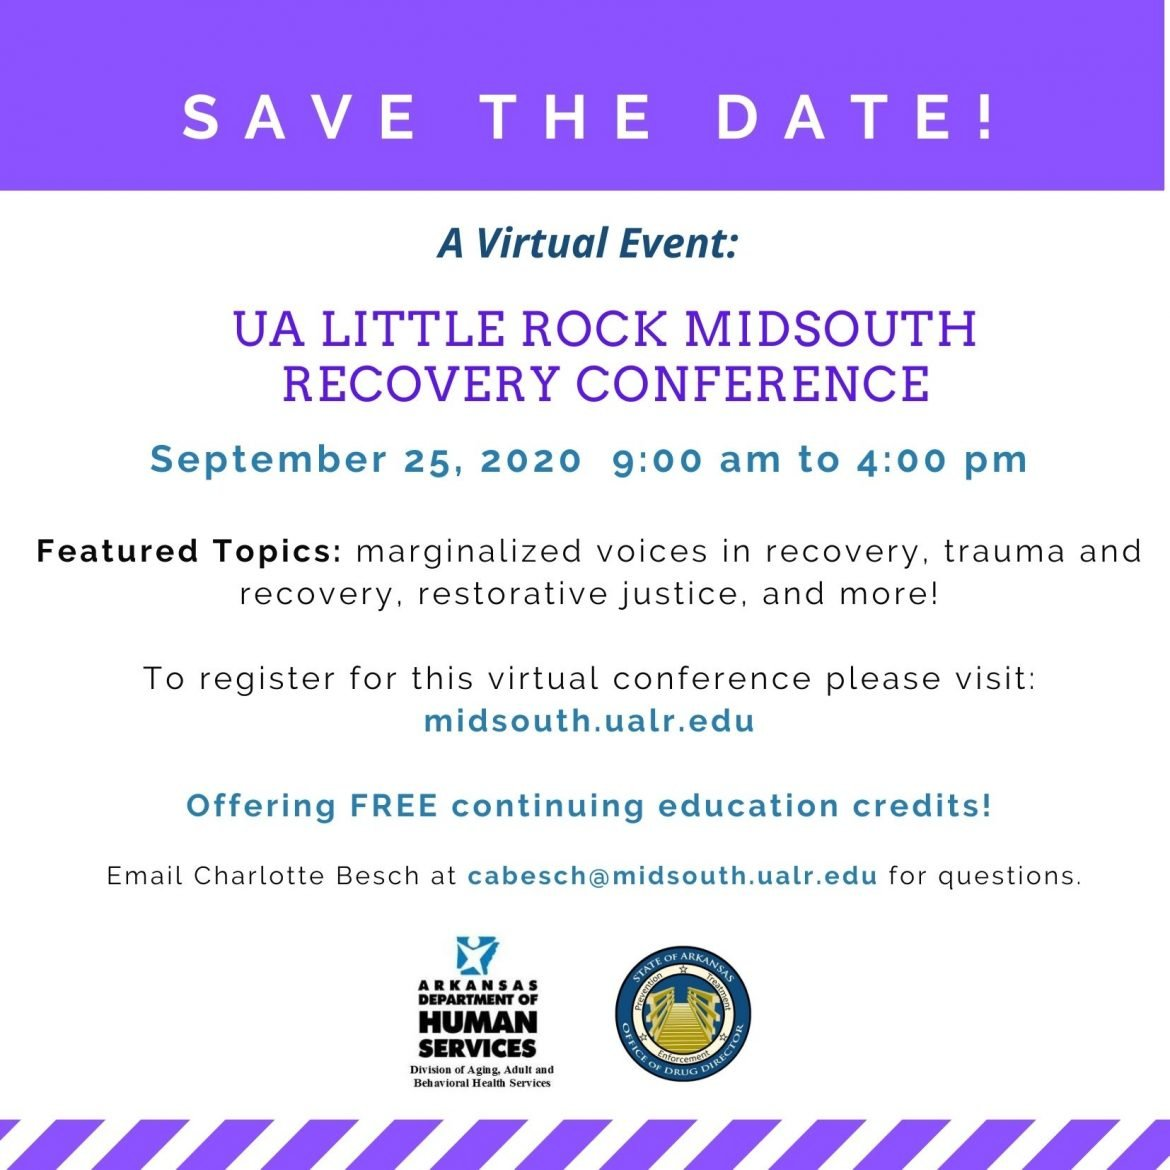 UA Little Rock Recovery Conference, September 25th